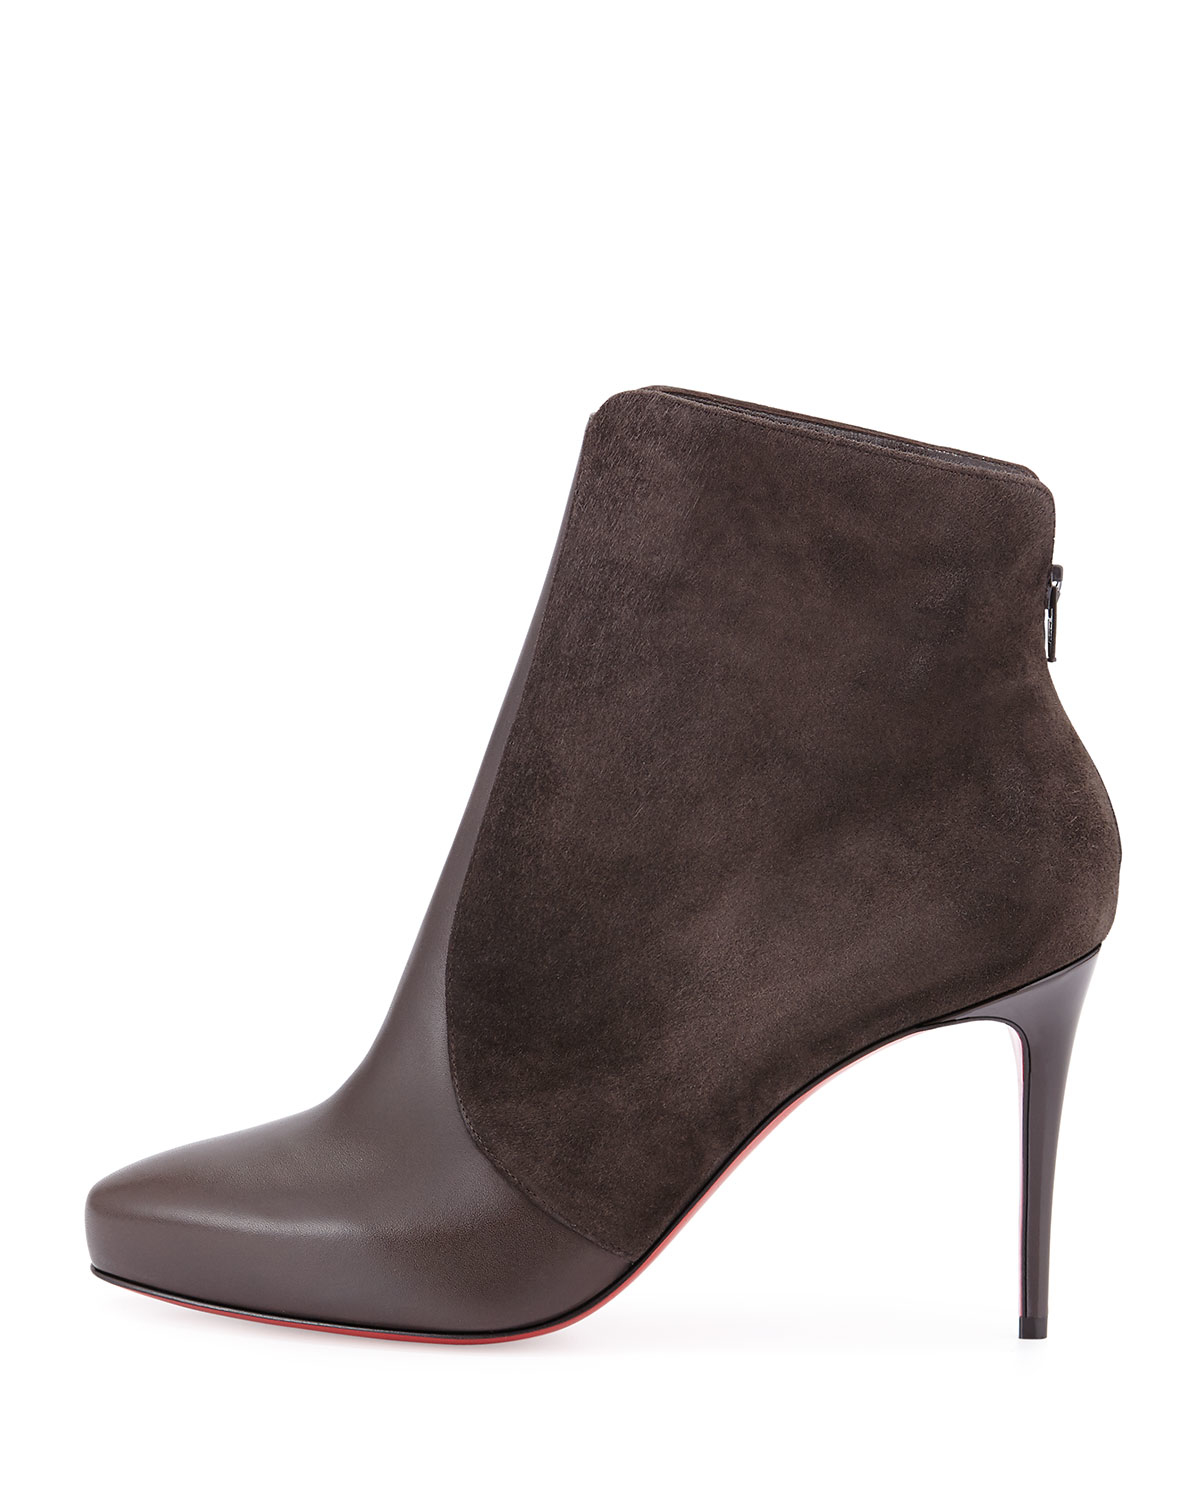 louboutins price - Christian louboutin Gaetanina Paneled Red Sole Bootie in Brown ...